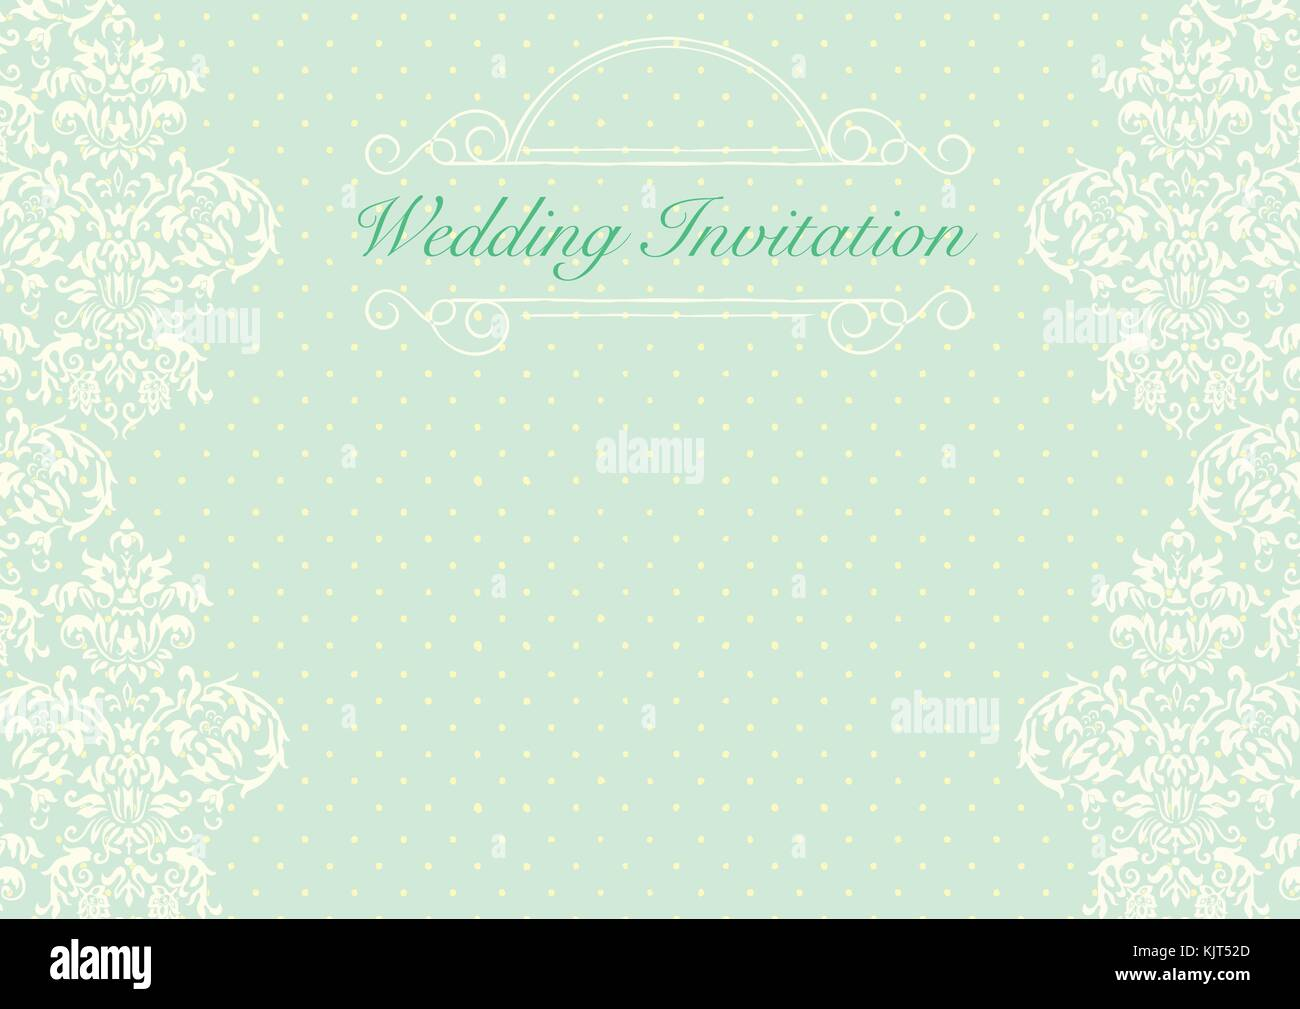 the green wedding invitation card background template with yellow